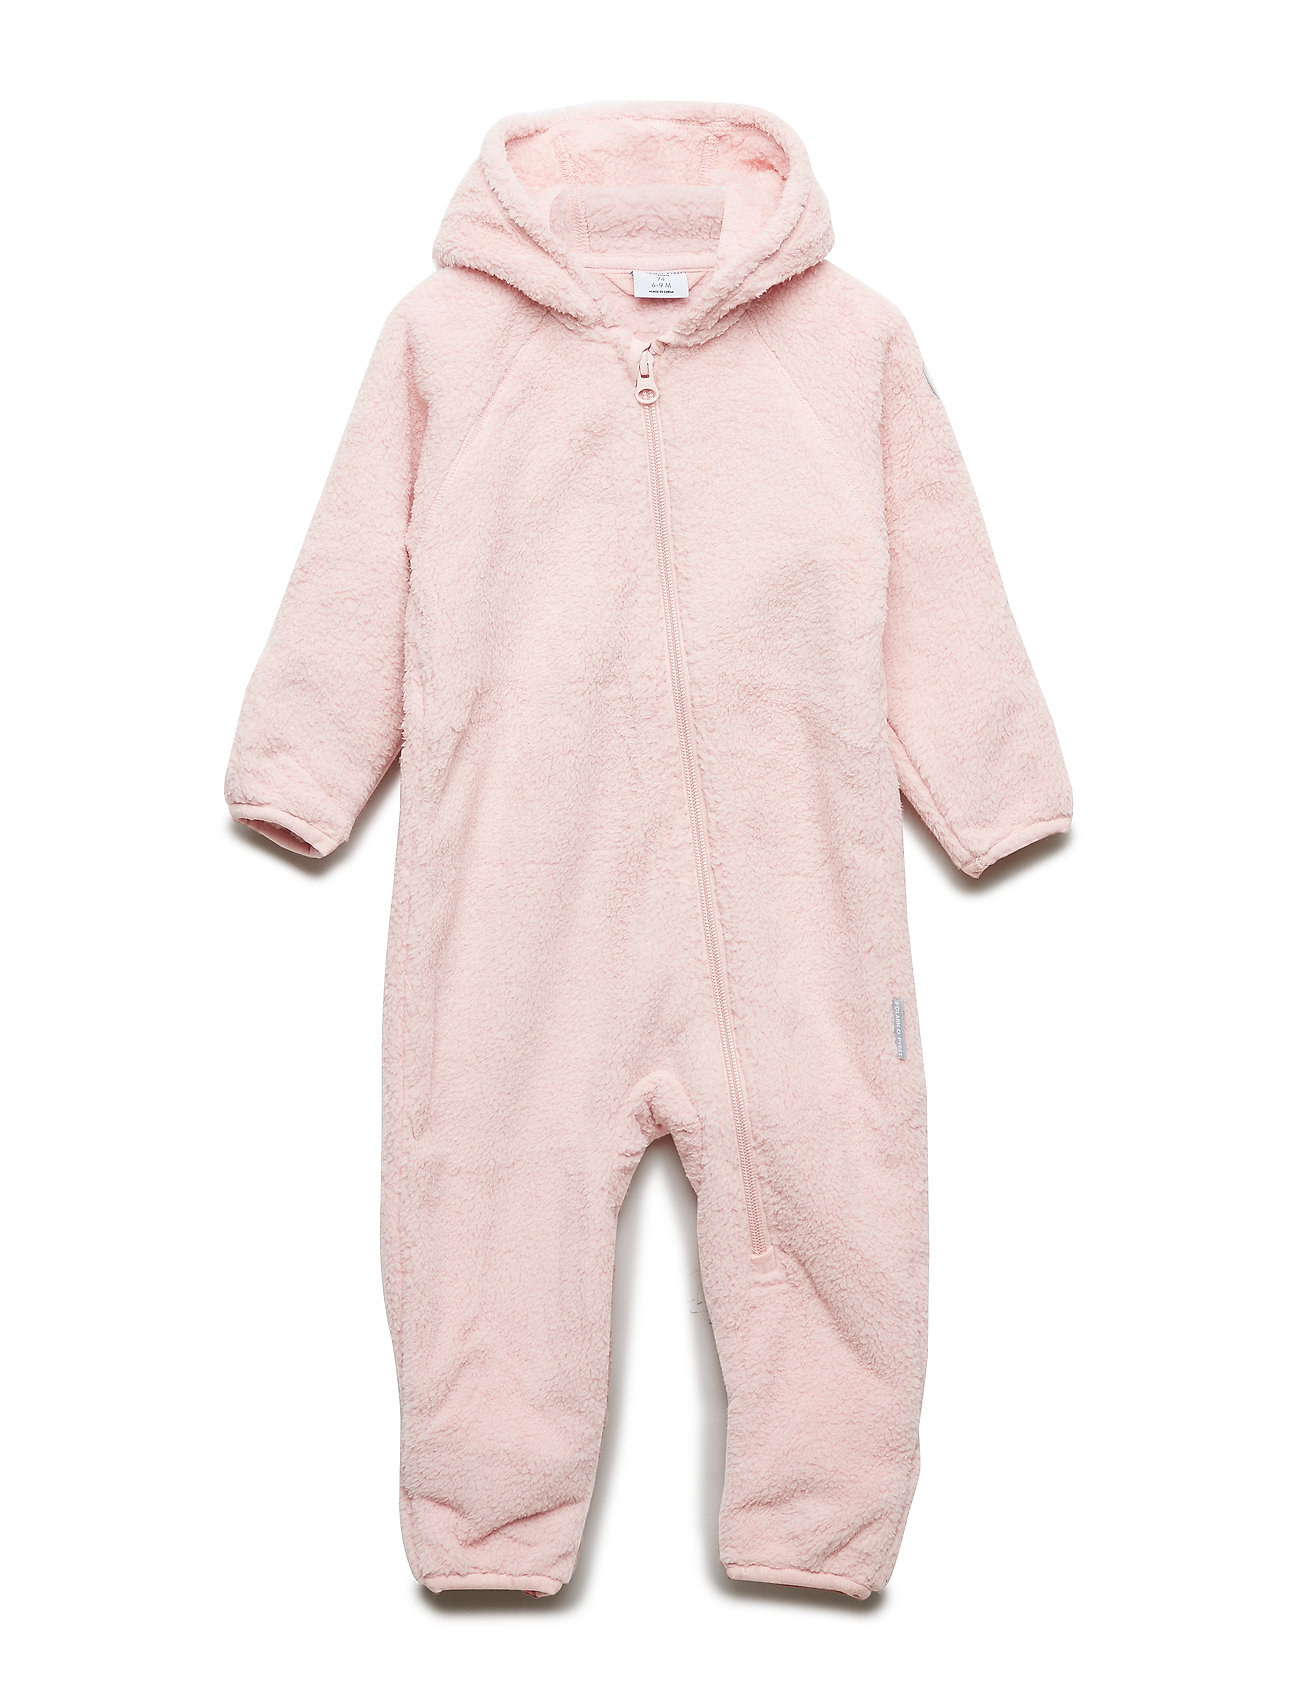 Polarn O. Pyret Overall Pile Solid Baby - SILVER PINK